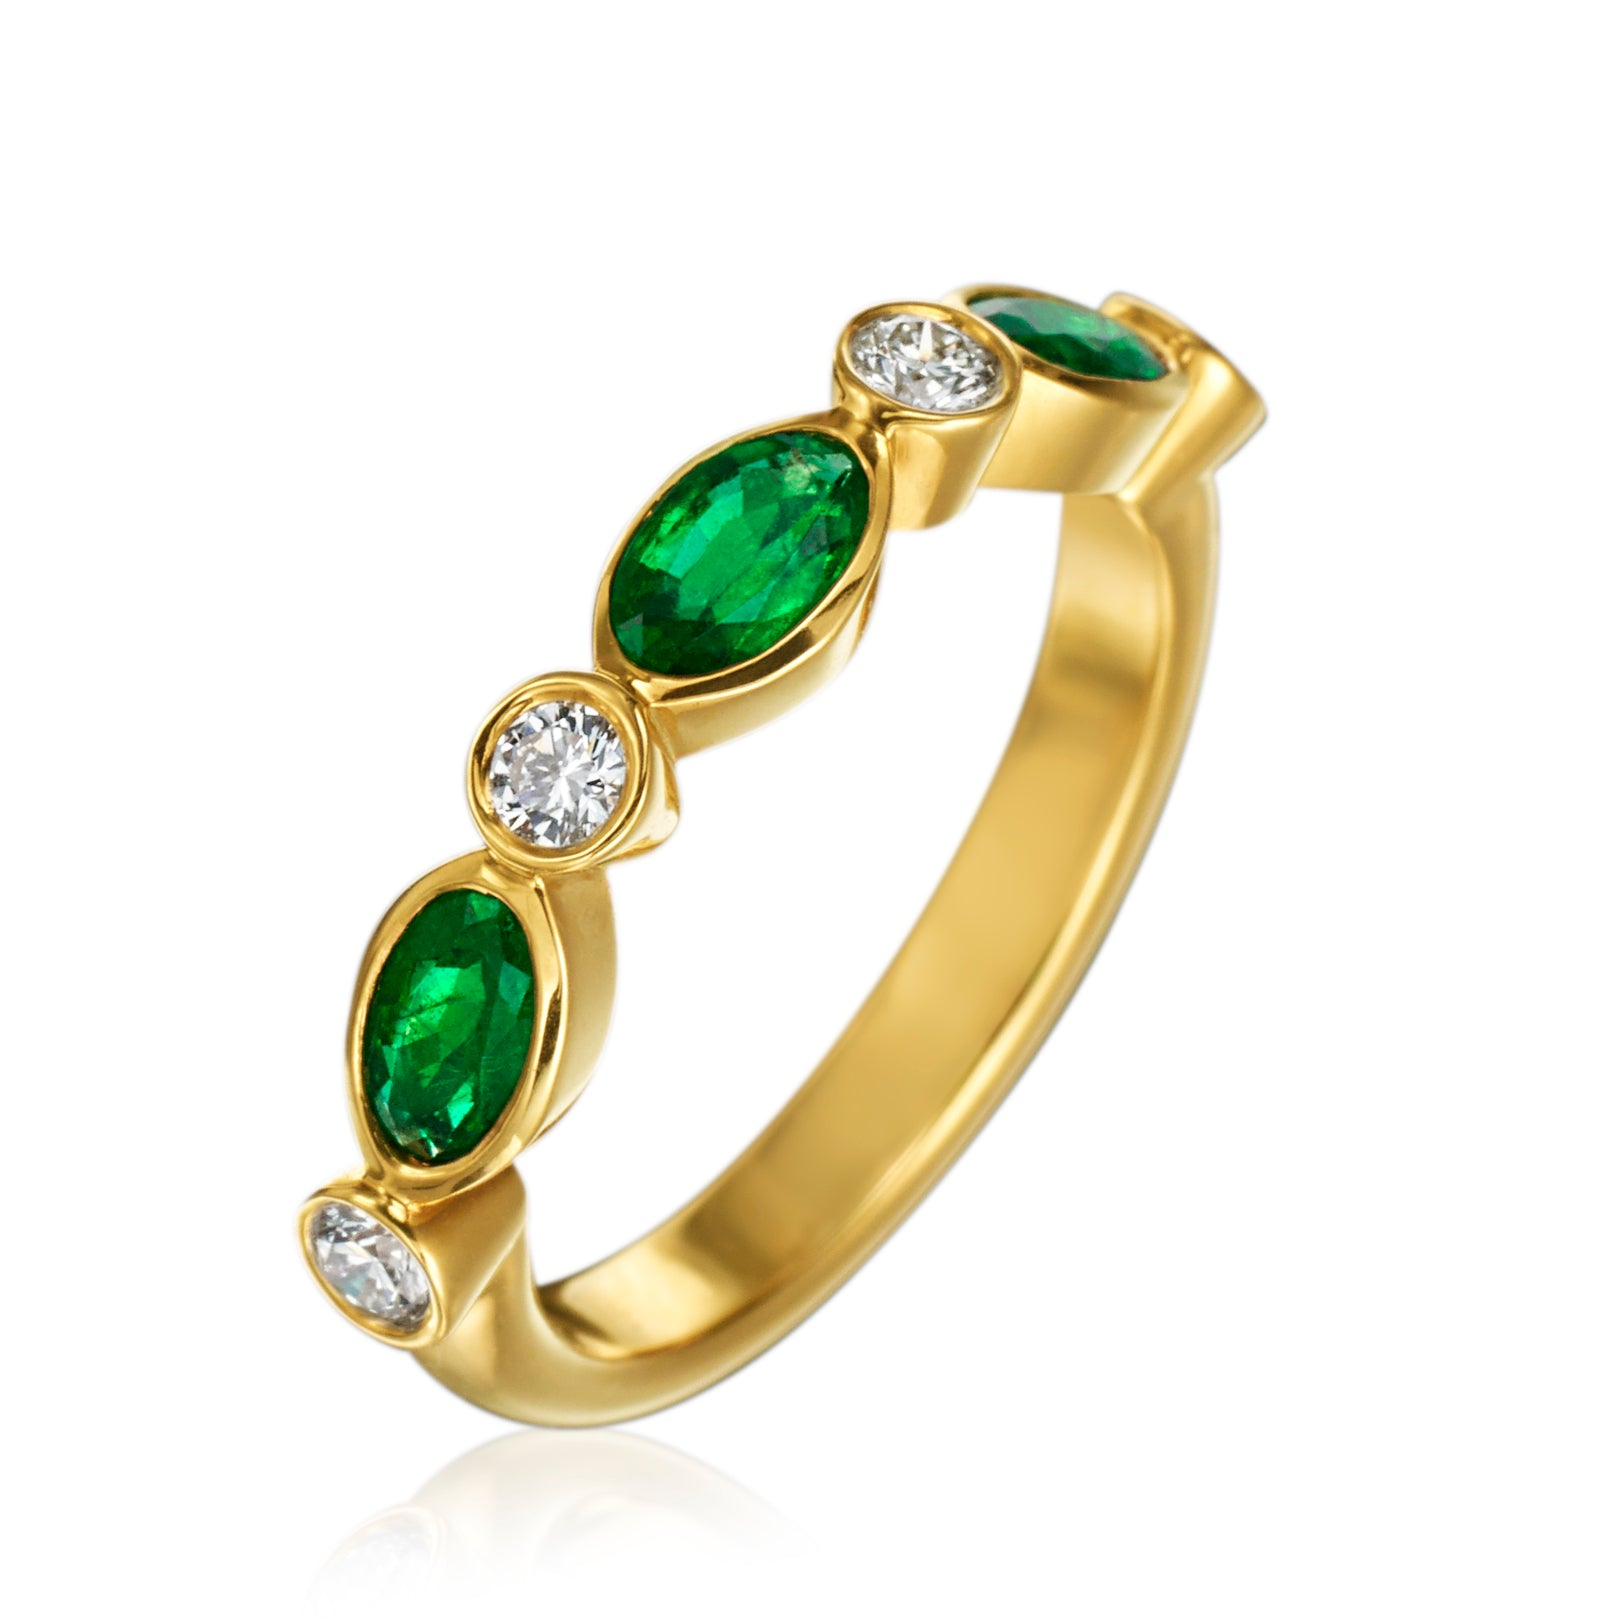 Gumuchian Marbella Emerald and Diamond Ring